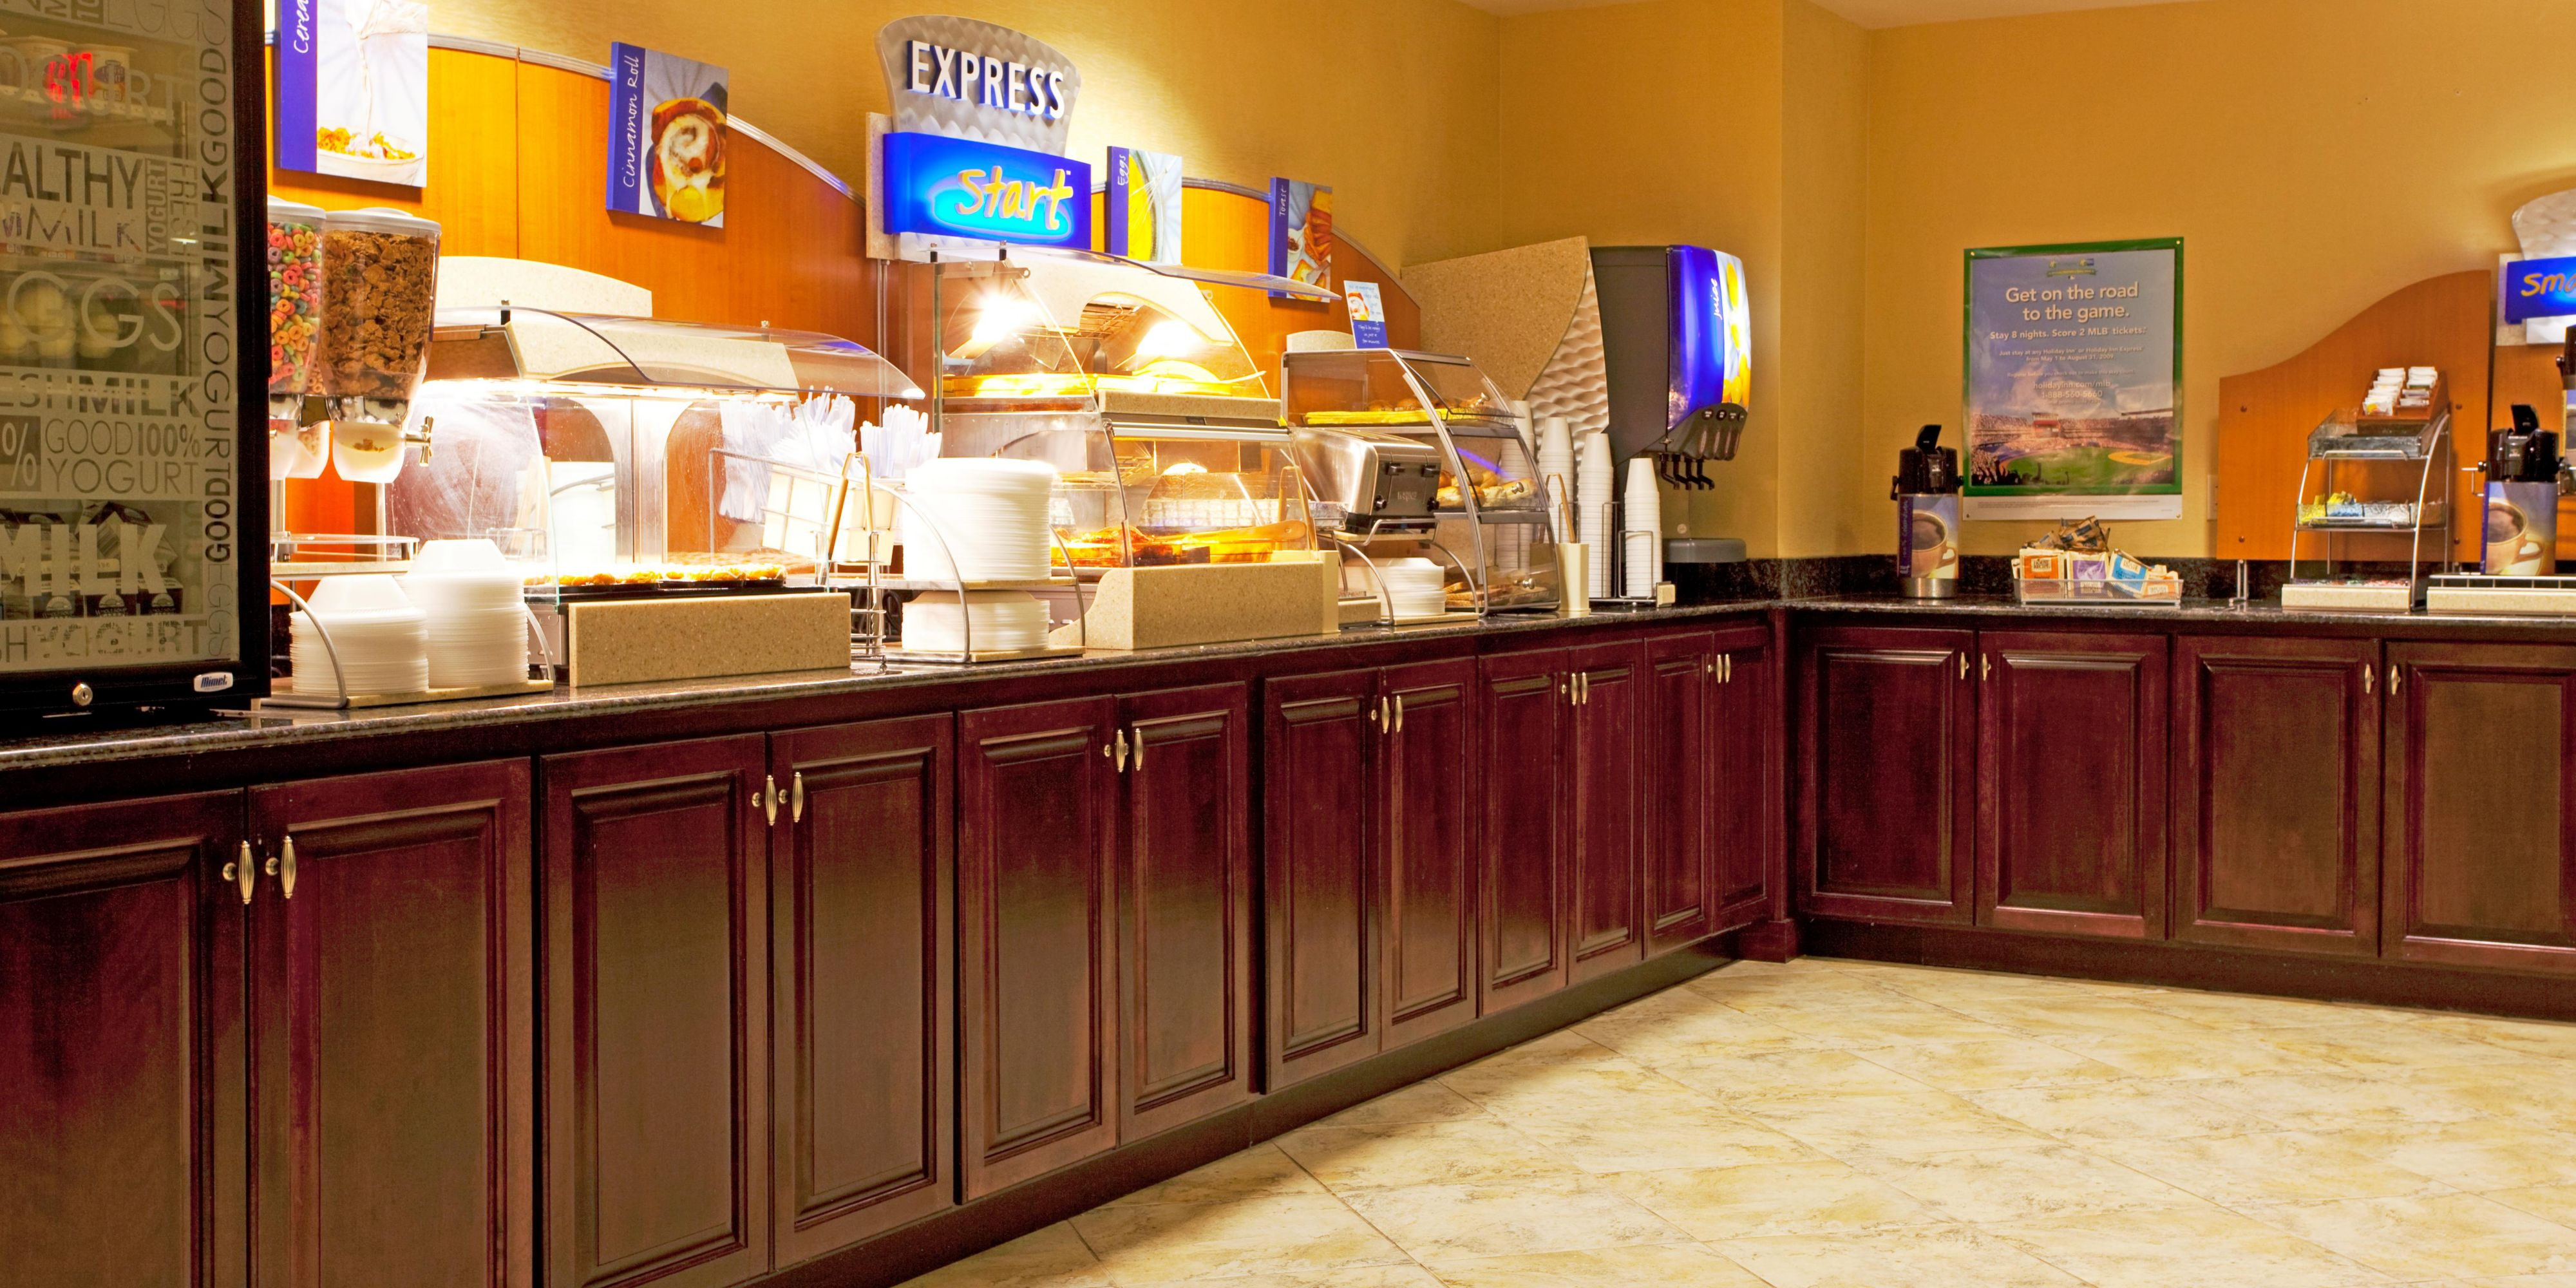 Holiday Inn Express & Suites Chaffee-Jacksonville West Hotel by IHG